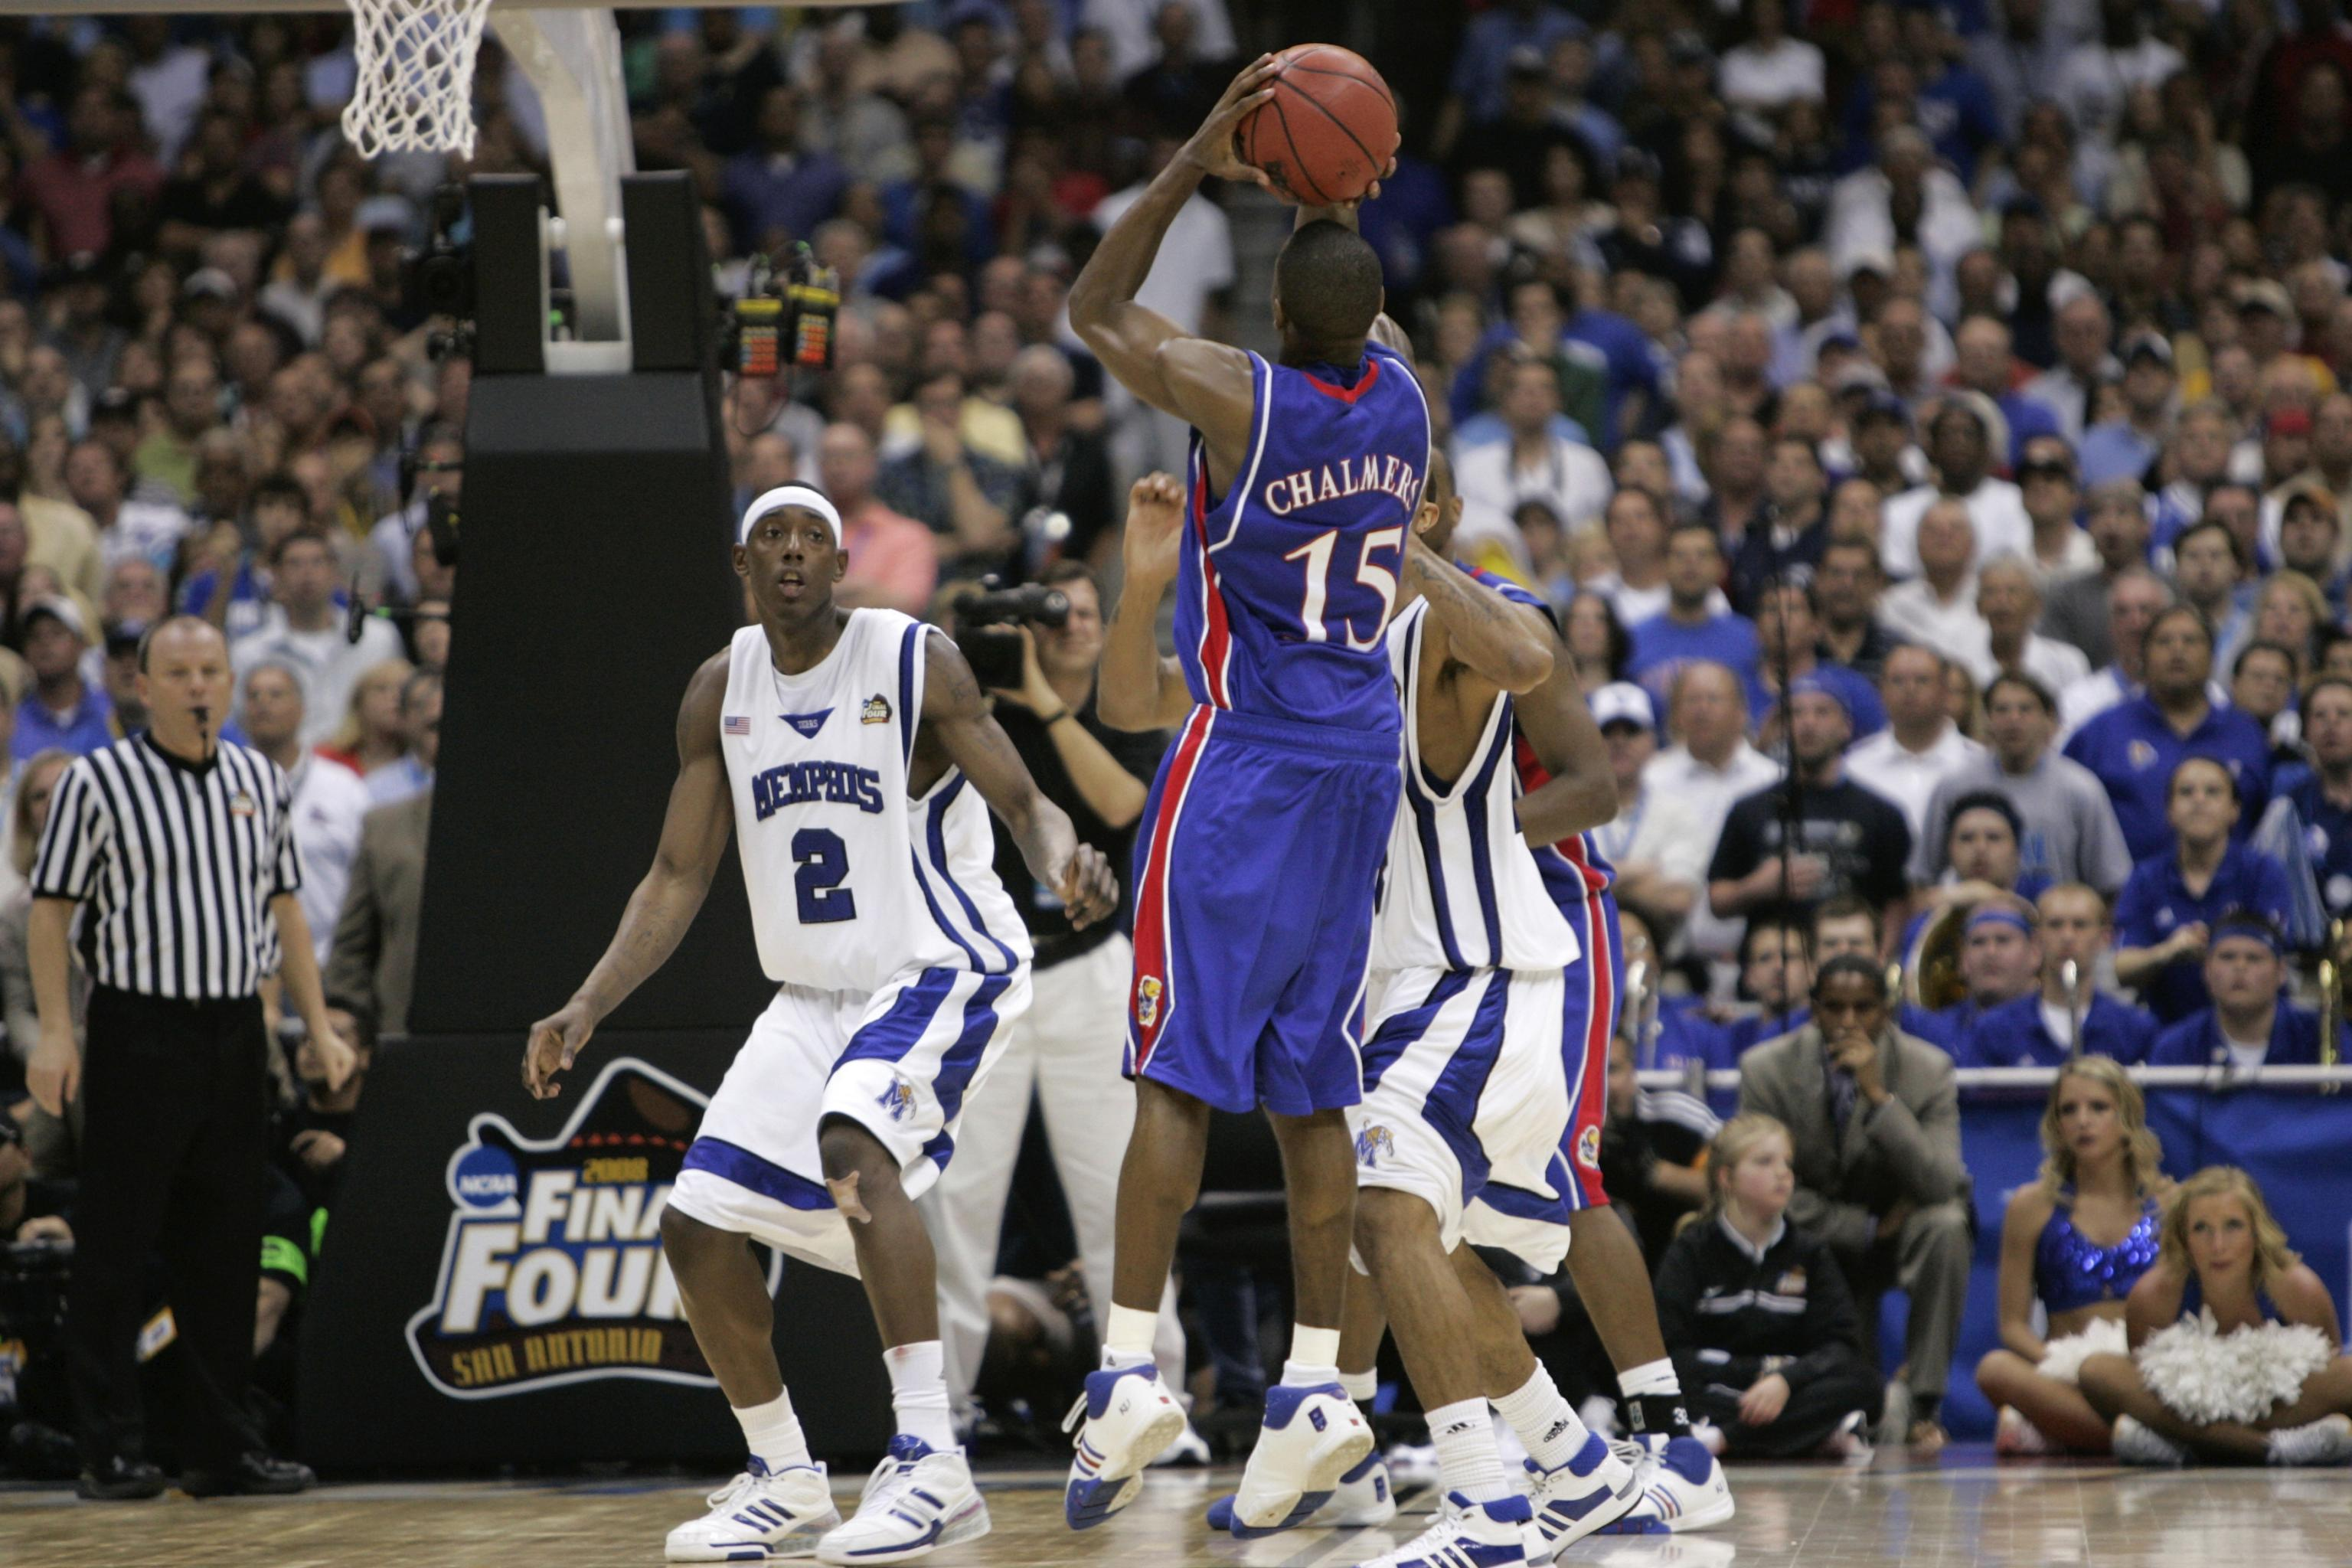 Kansas Head Coach Bill Self Live-Tweets 2008 National Championship ...